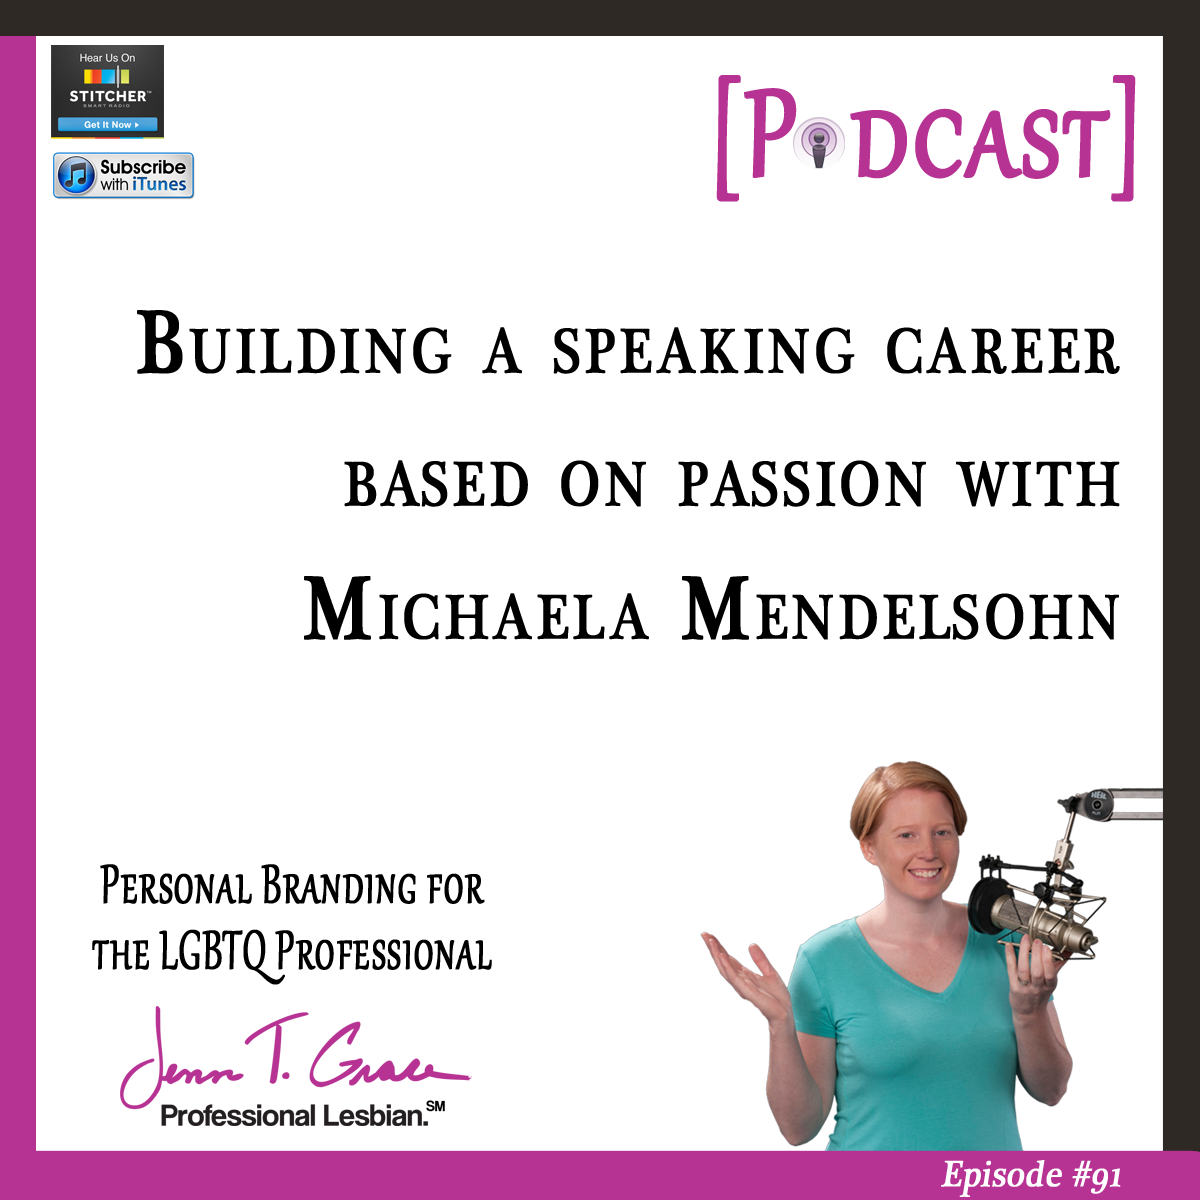 #91: Building a Speaking Career Based on Passion with Michaela Mendelsohn